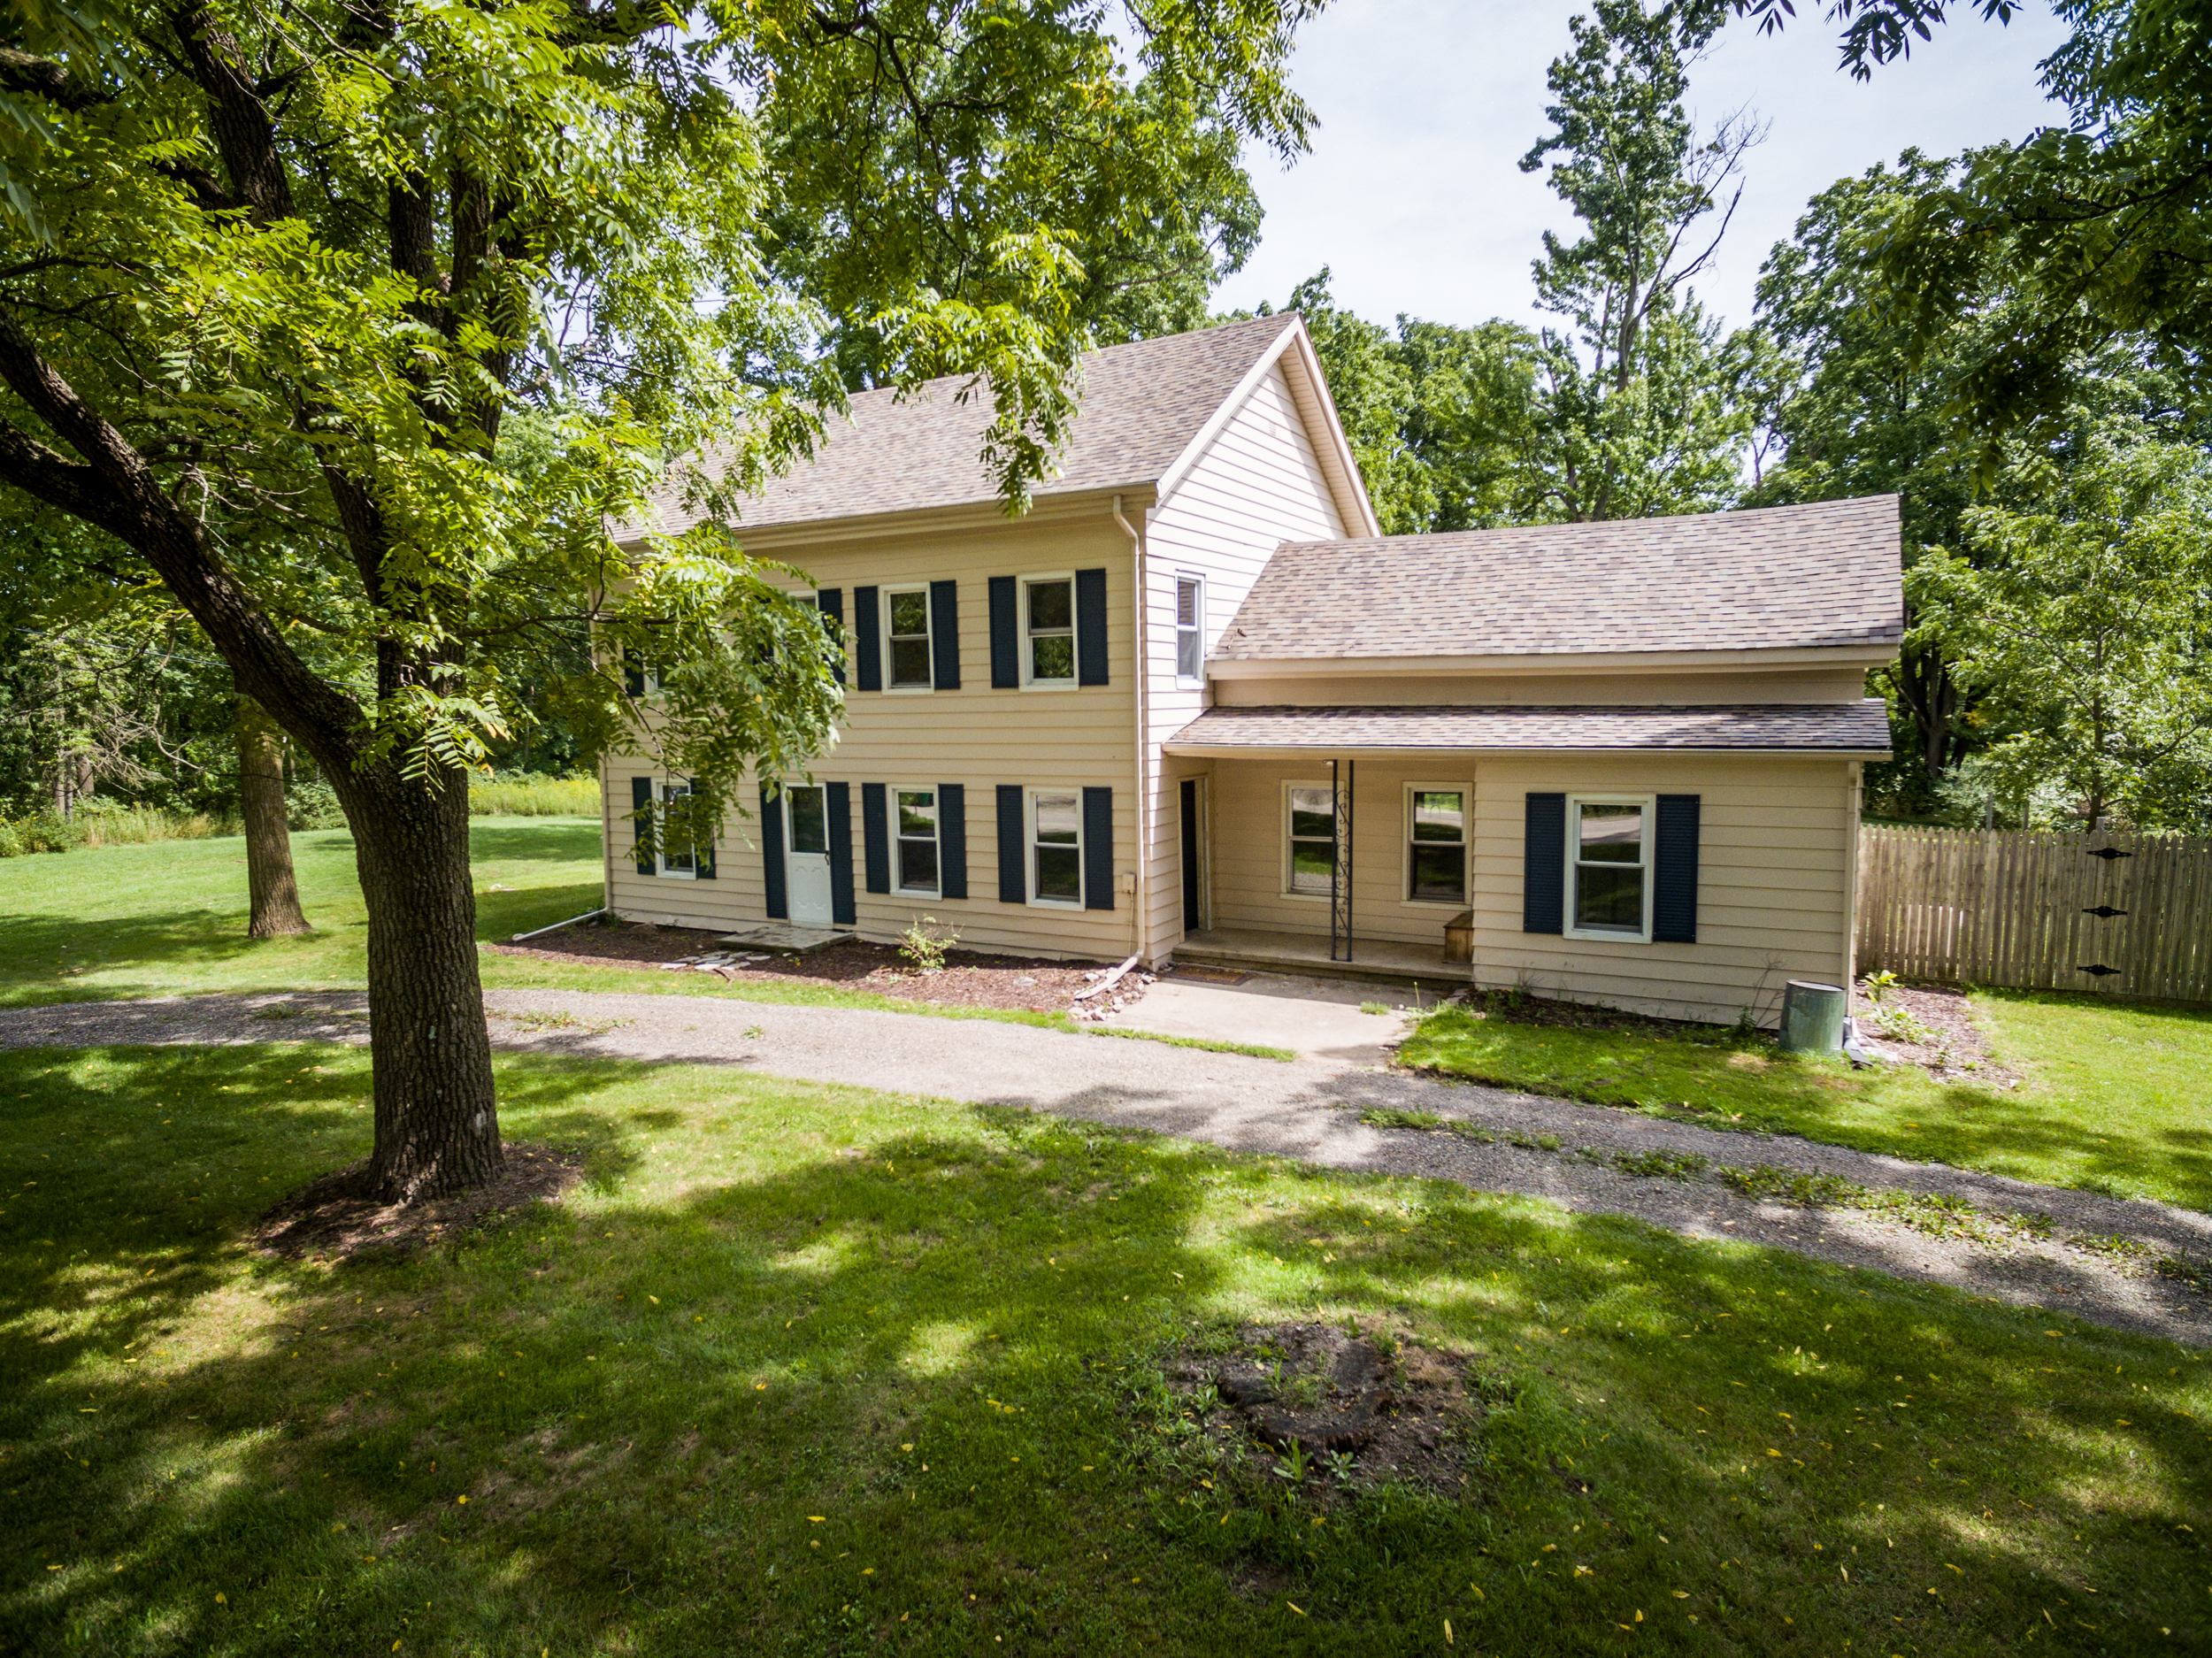 Hughes- Howell - $173,000   DOM 41 / Sold for 100% of asking price / 48 Showings